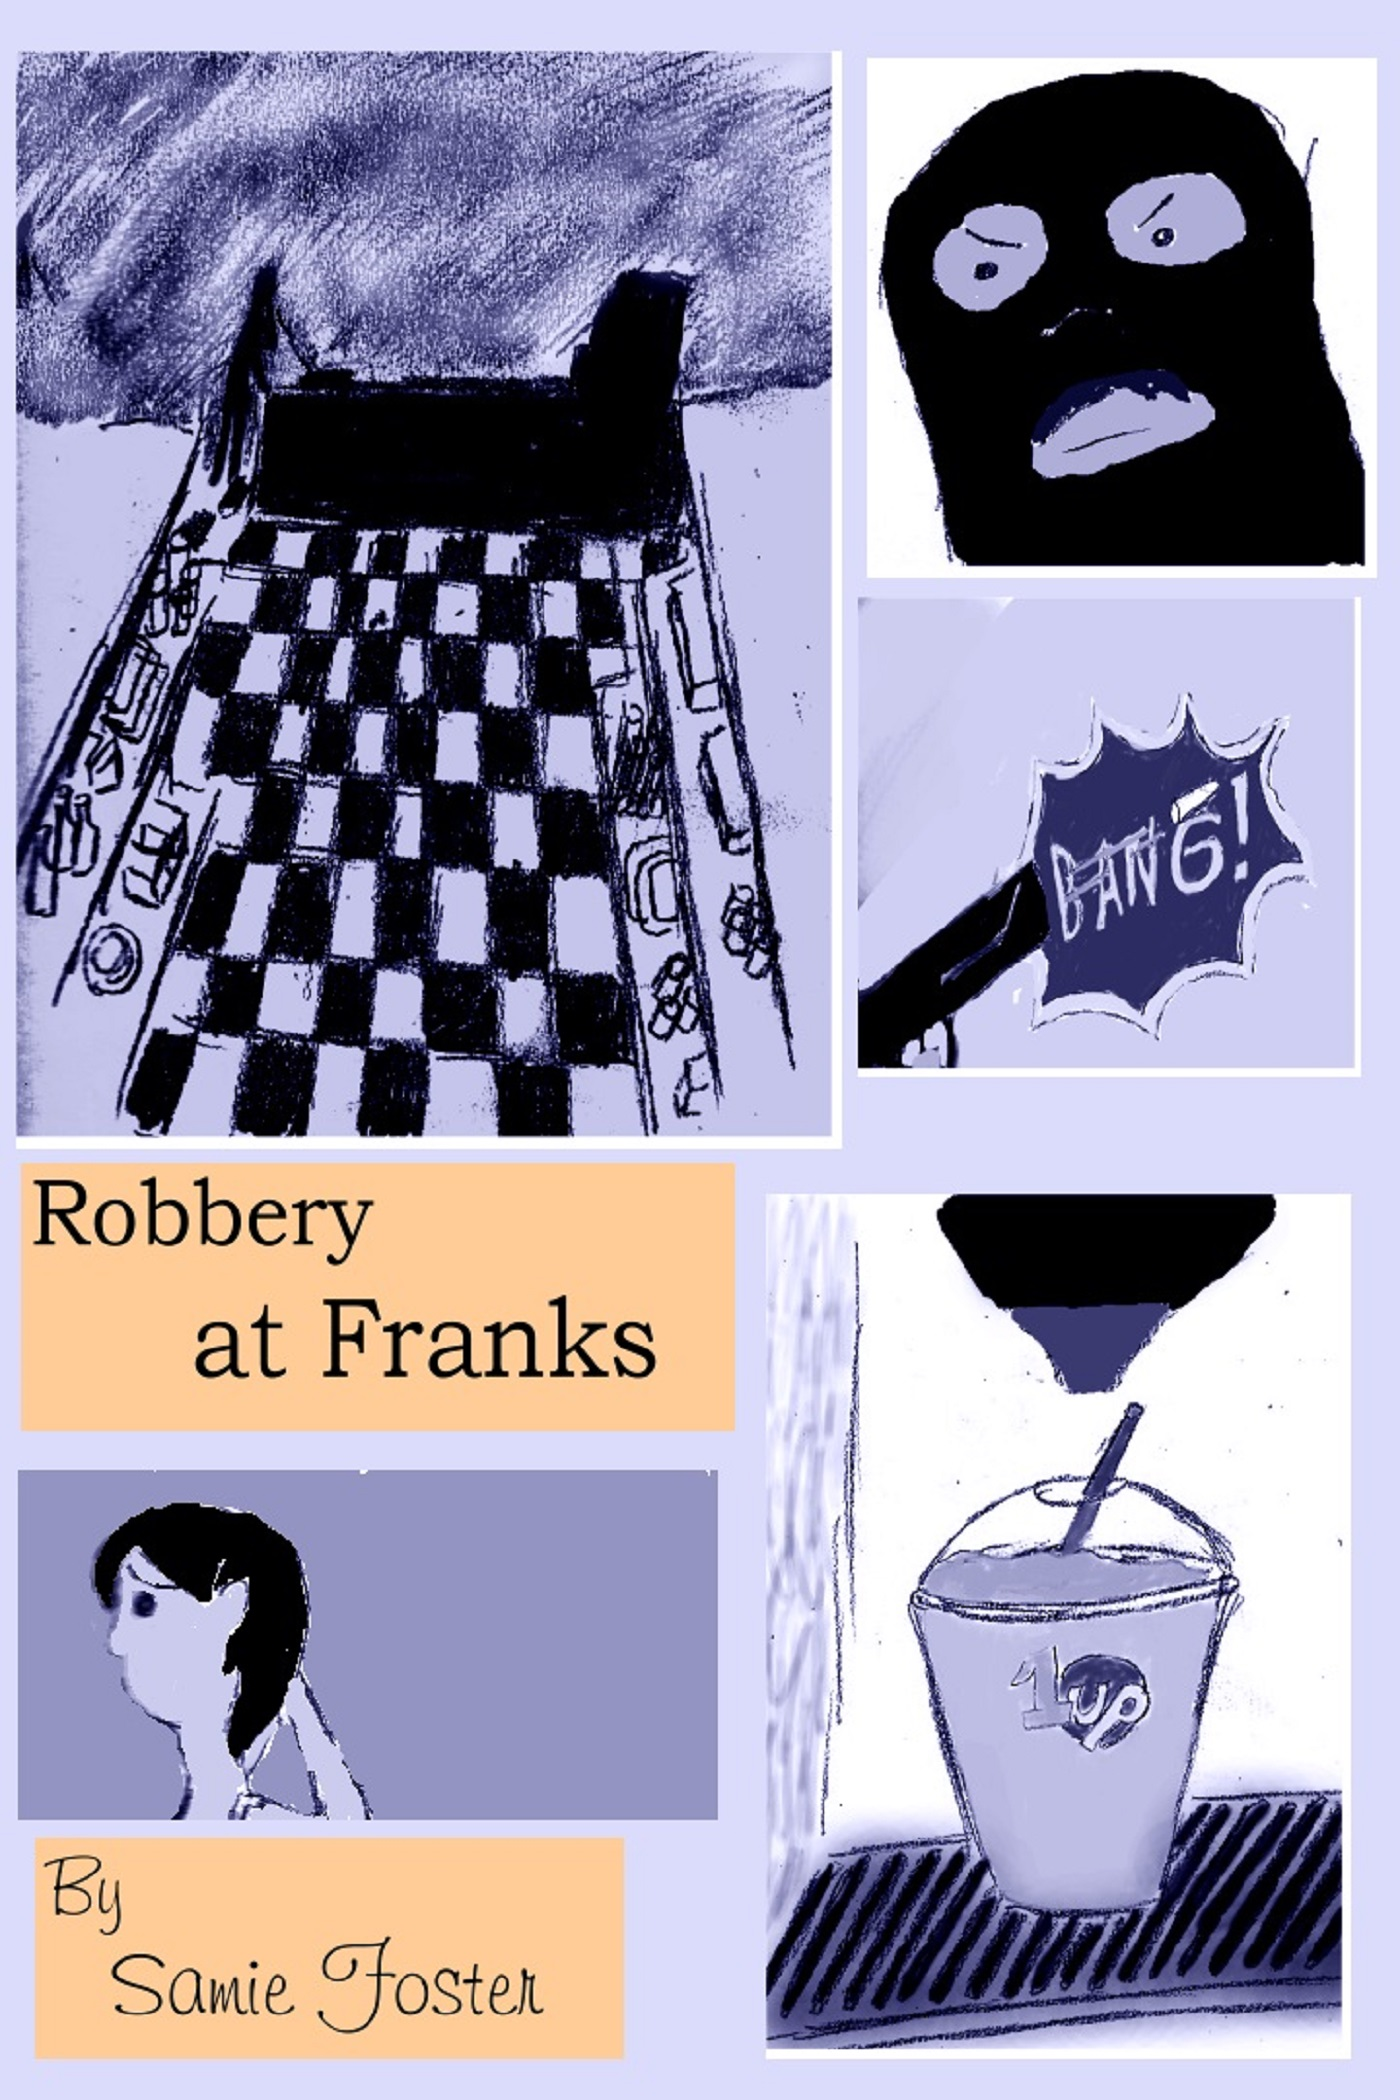 Robbery at Franks